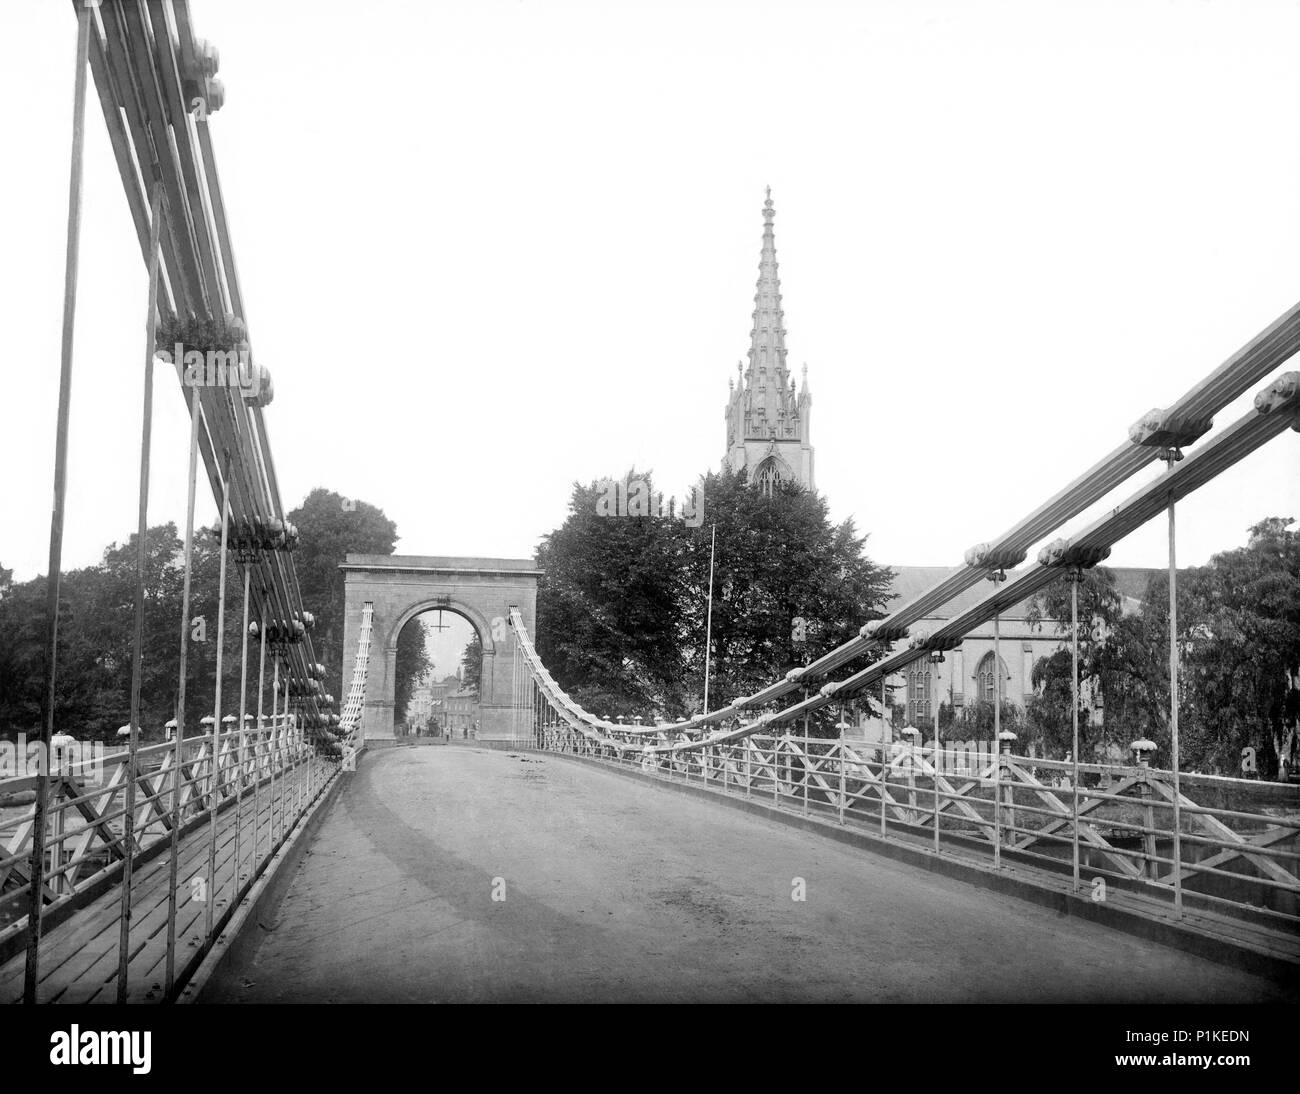 Marlow Bridge, Buckinghamshire, c1860-c1922. Looking along the suspension bridge over the River Thames, which was designed by William Tierney Clark an - Stock Image